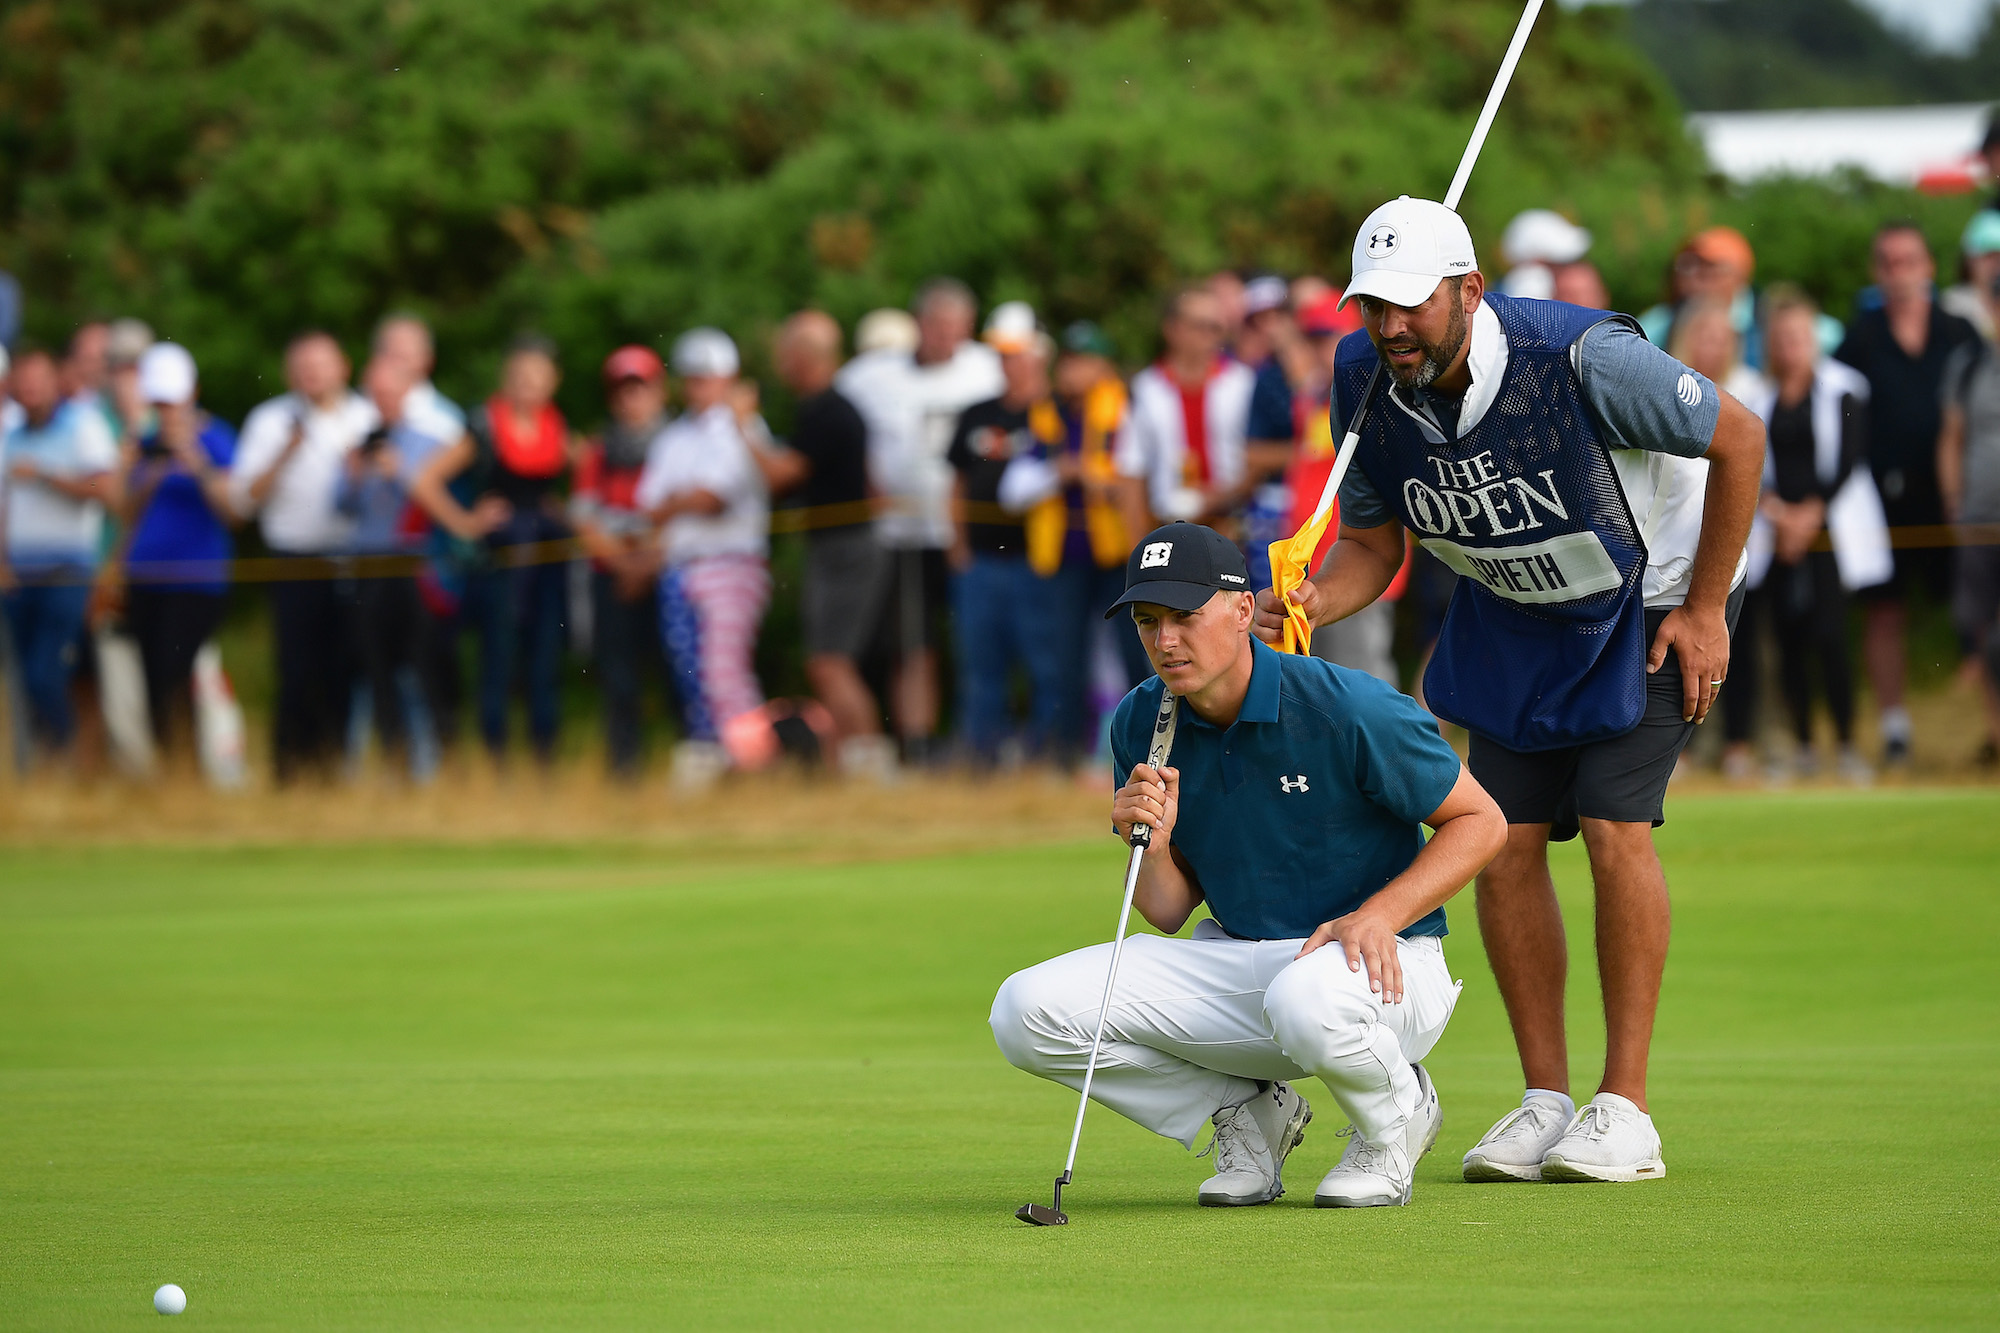 2018 Open Championship: Round 3 - Lining Up a Birdie Putt on No. 11